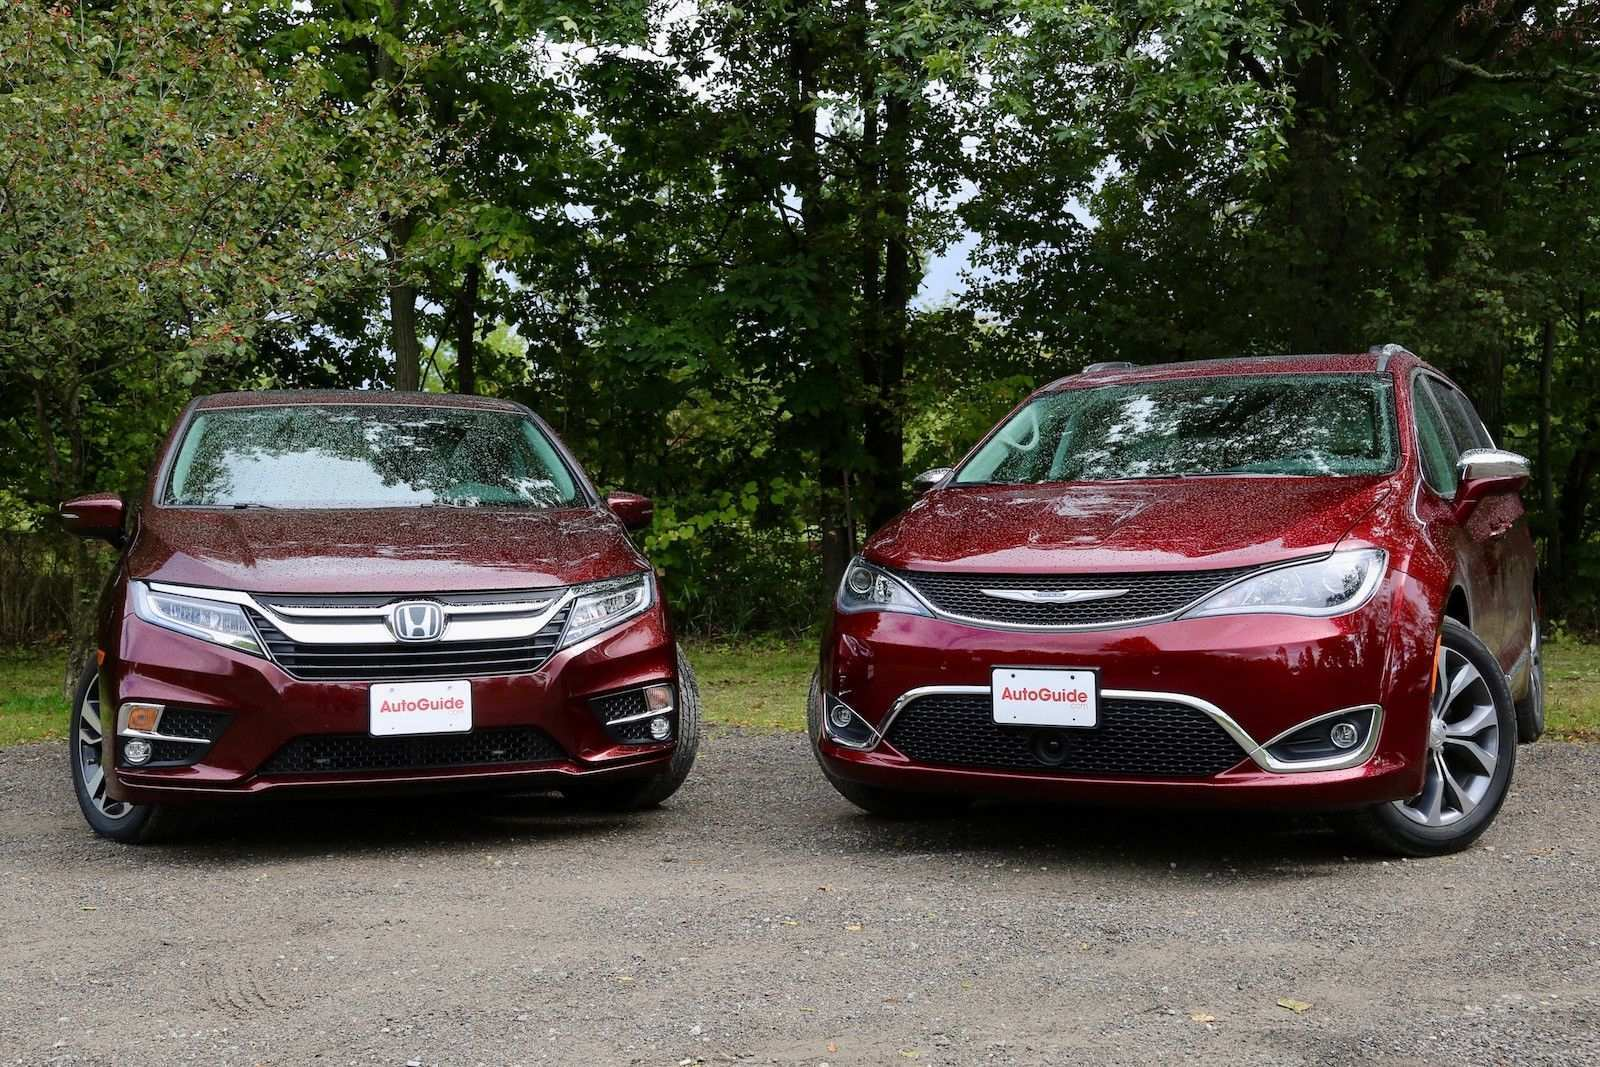 36 New 2020 Chrysler 100 Research New for 2020 Chrysler 100